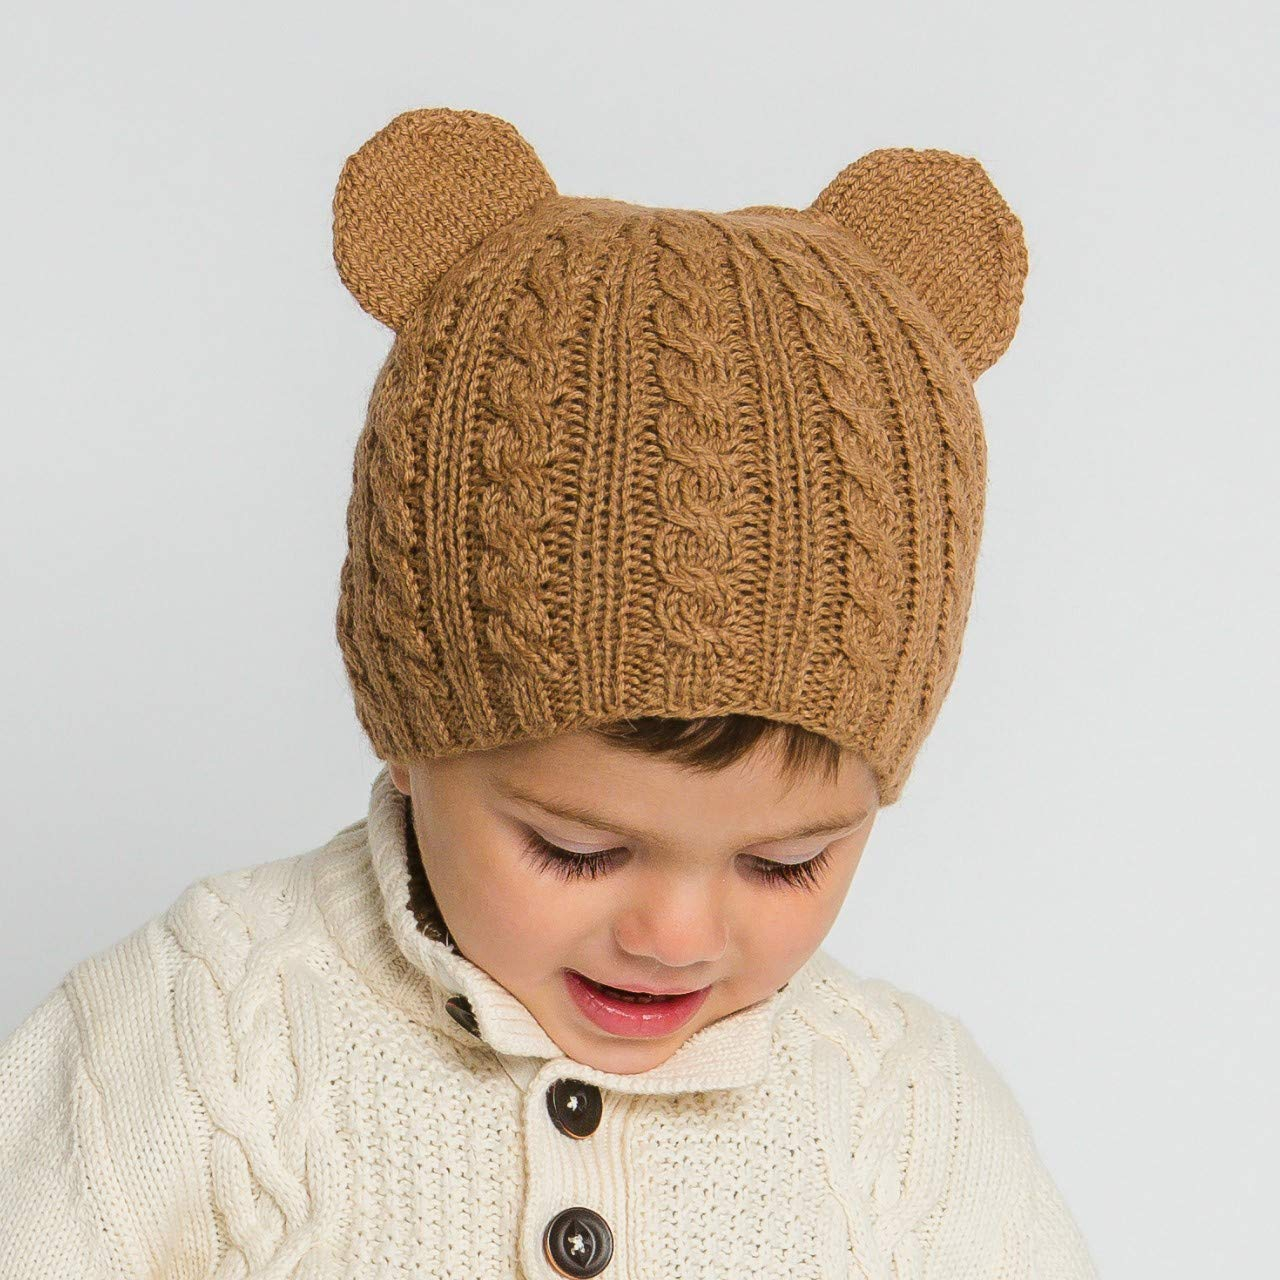 Hand-Knit 100% Organic Alpaca Wool | Pasco Bear Beanie Hat 2T-5T (Brown) by Surhilo | Soft, Quality, Hypoallergenic | The Perfect and Eco-Friendly Way to Keep Your Baby and Toddler Cozy & Comfortable